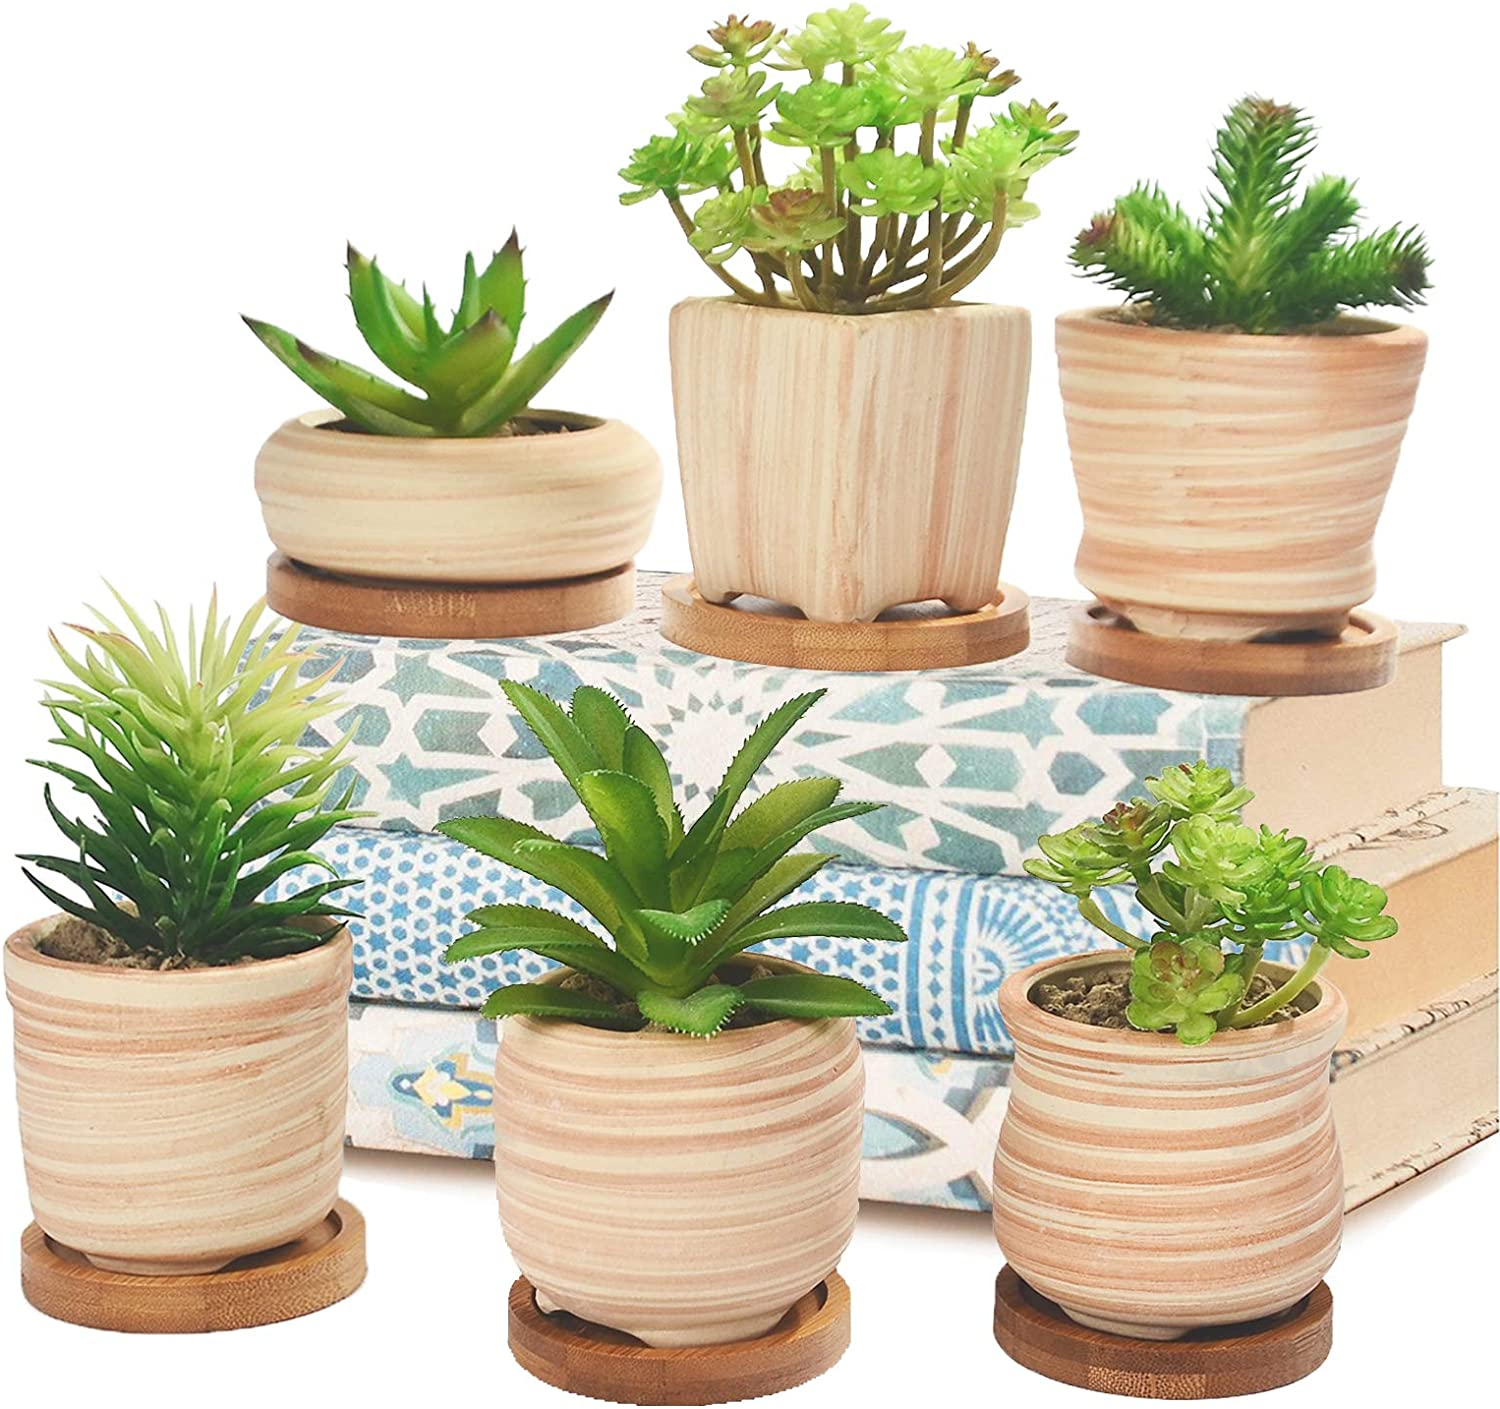 Joyhug 3 Inch Ceramic Wooden Pattern Succulent Plant Pot - Small Planter Container for Mini Bonsai, Cactus, Herbs - Decorative Garden Pots with Bamboo Tray, Gift Idea Set of 6